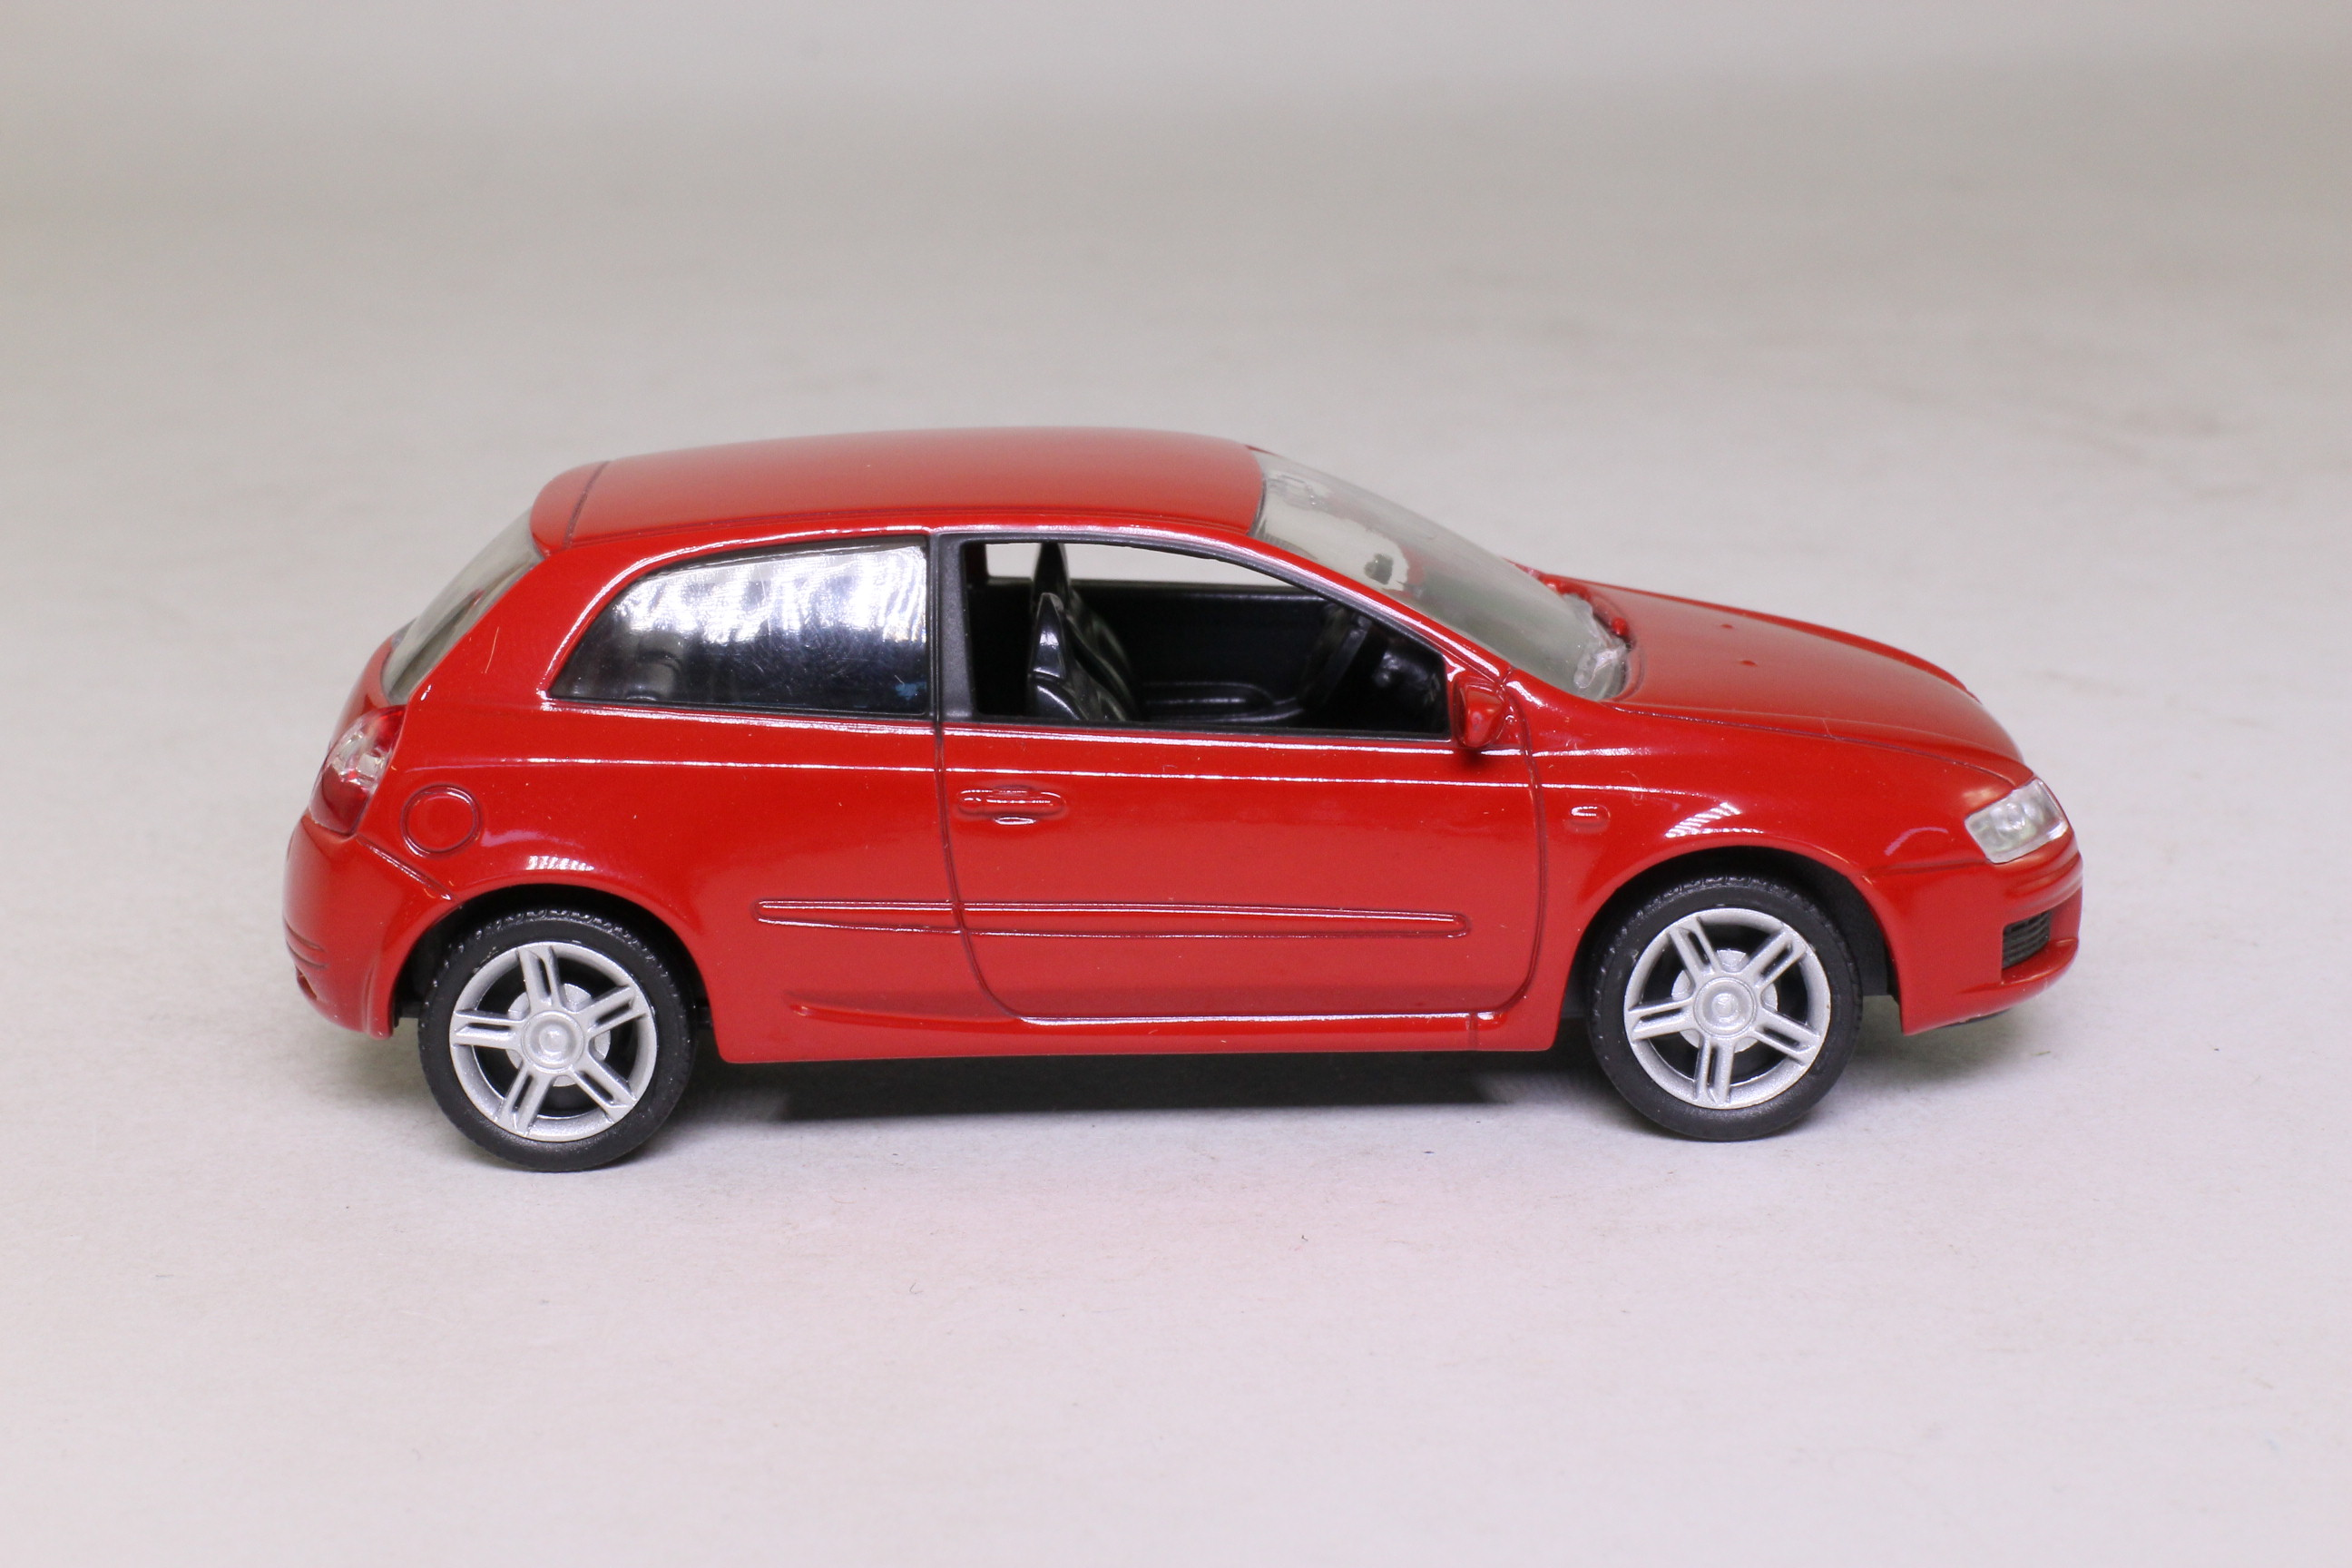 norev 71004 fiat stilo hatchback red 1 43 scale excellent boxed ebay. Black Bedroom Furniture Sets. Home Design Ideas